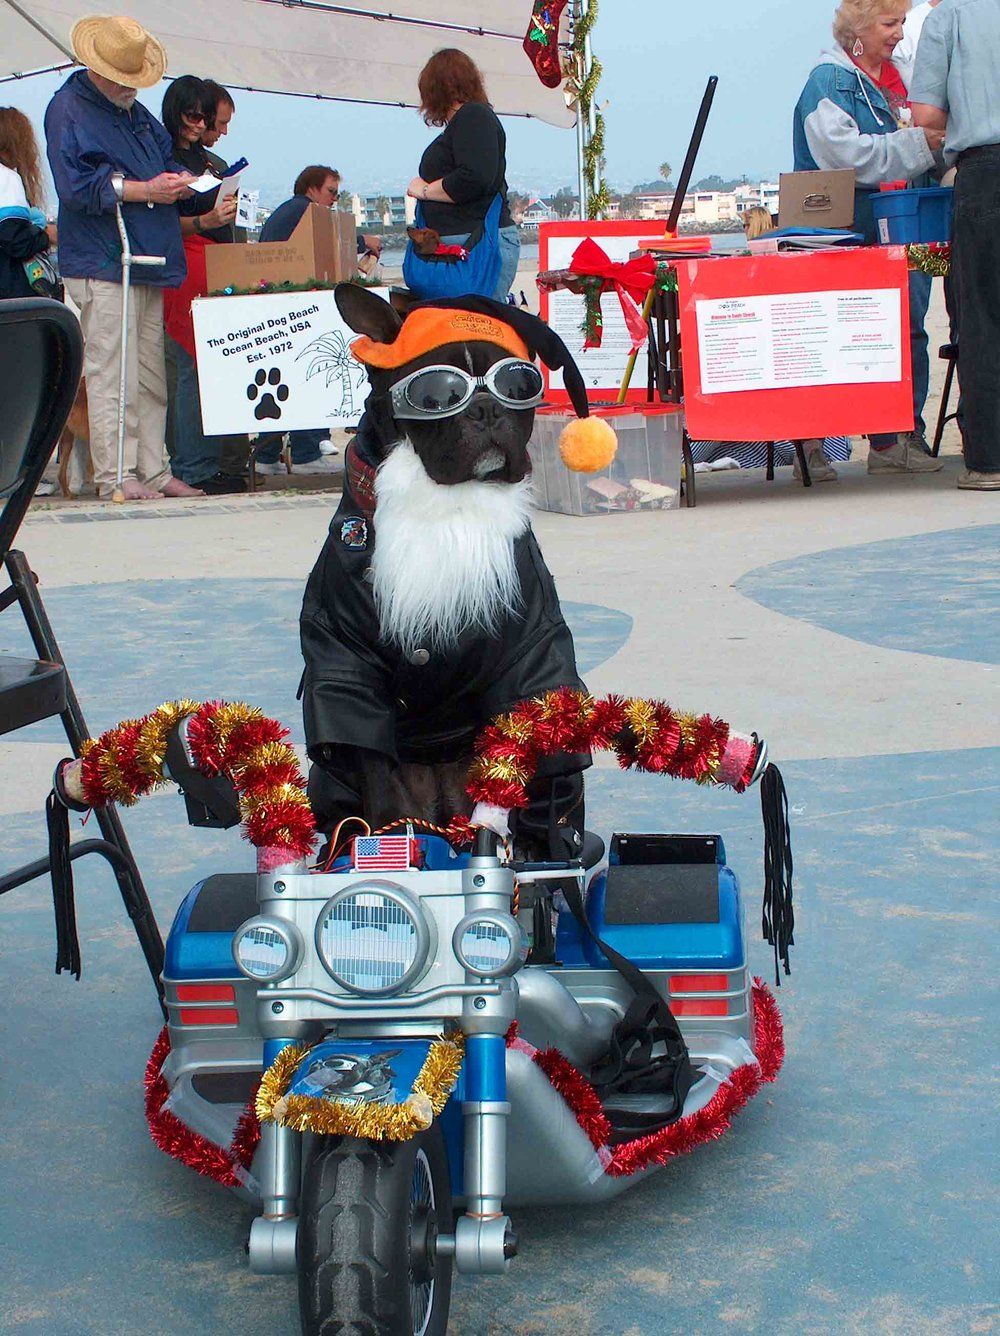 Back in the day, when Howdy still ruled Dog Beach, so did our biker dog friend. This was before surf dog contests were invented.  Photo: (c) Barb Ayers, DogDiary.org